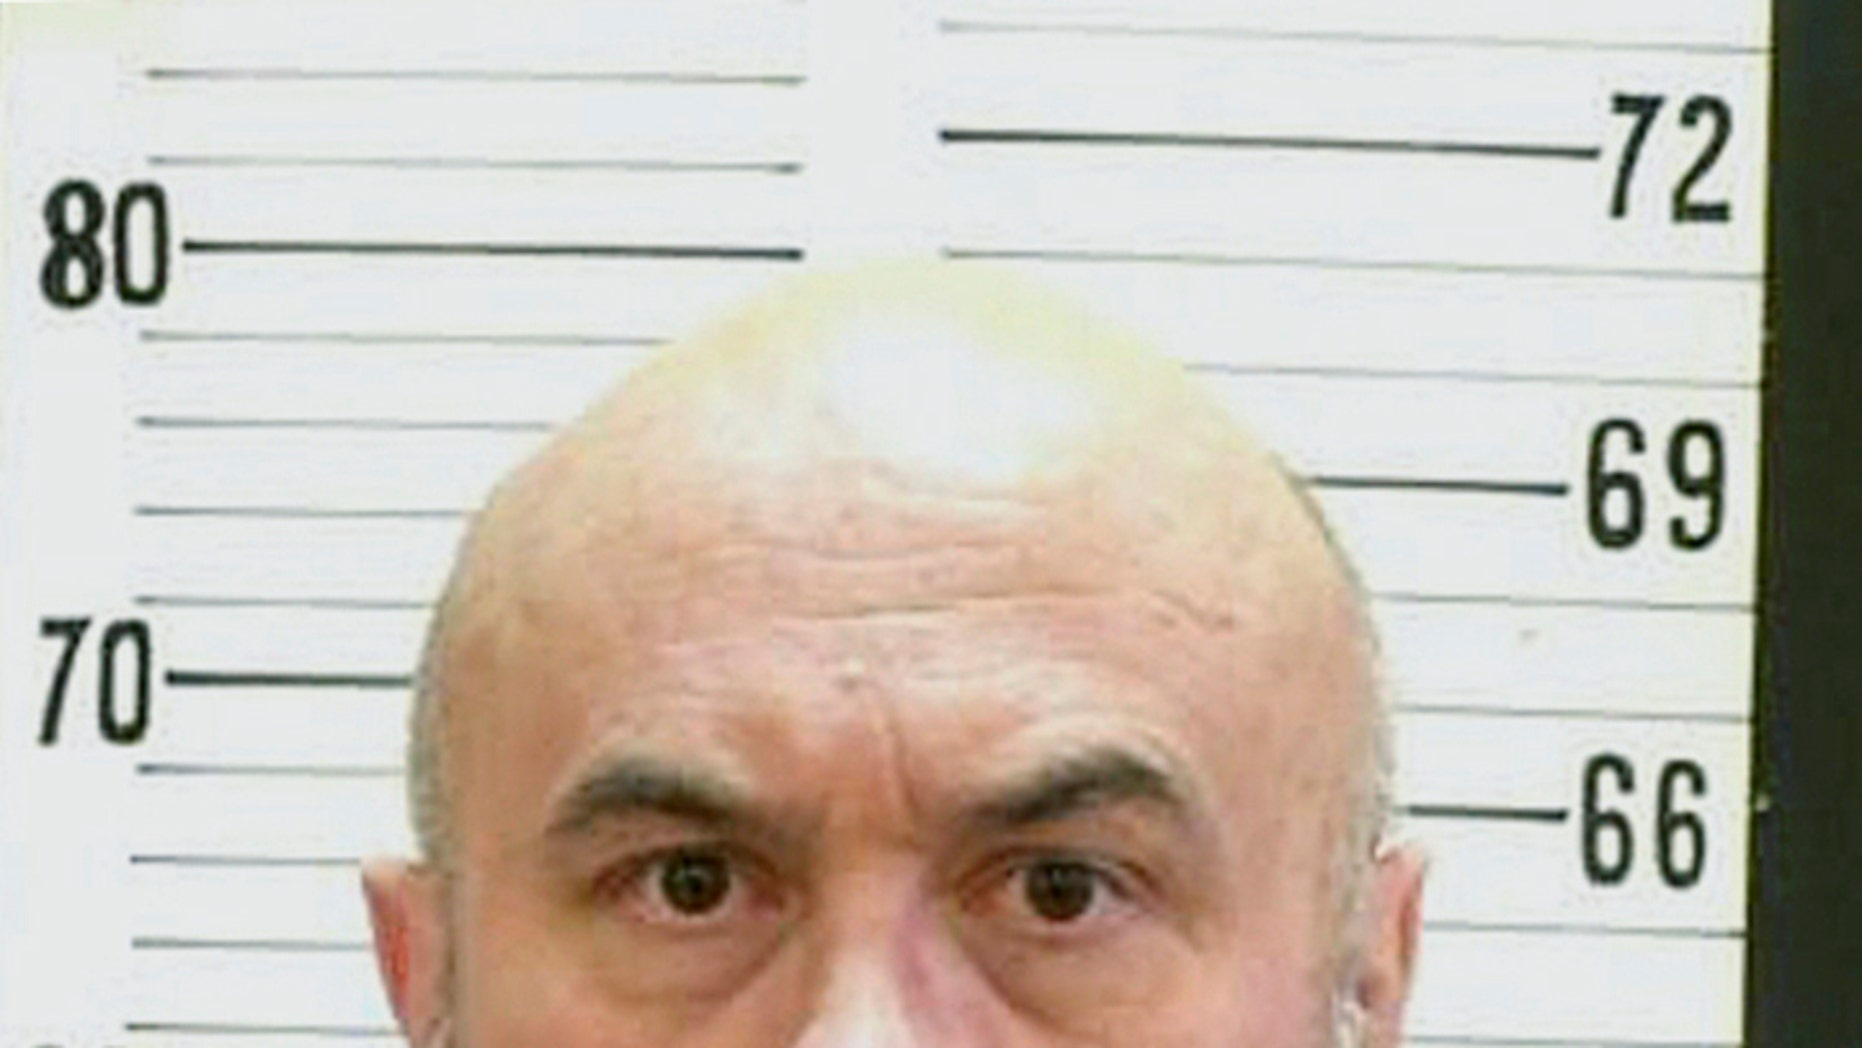 This undated photo released by the Tennessee Department of Corrections, shows death row inmate Edmund Zagorski in Tennessee. (Tennessee Department of Corrections via AP)